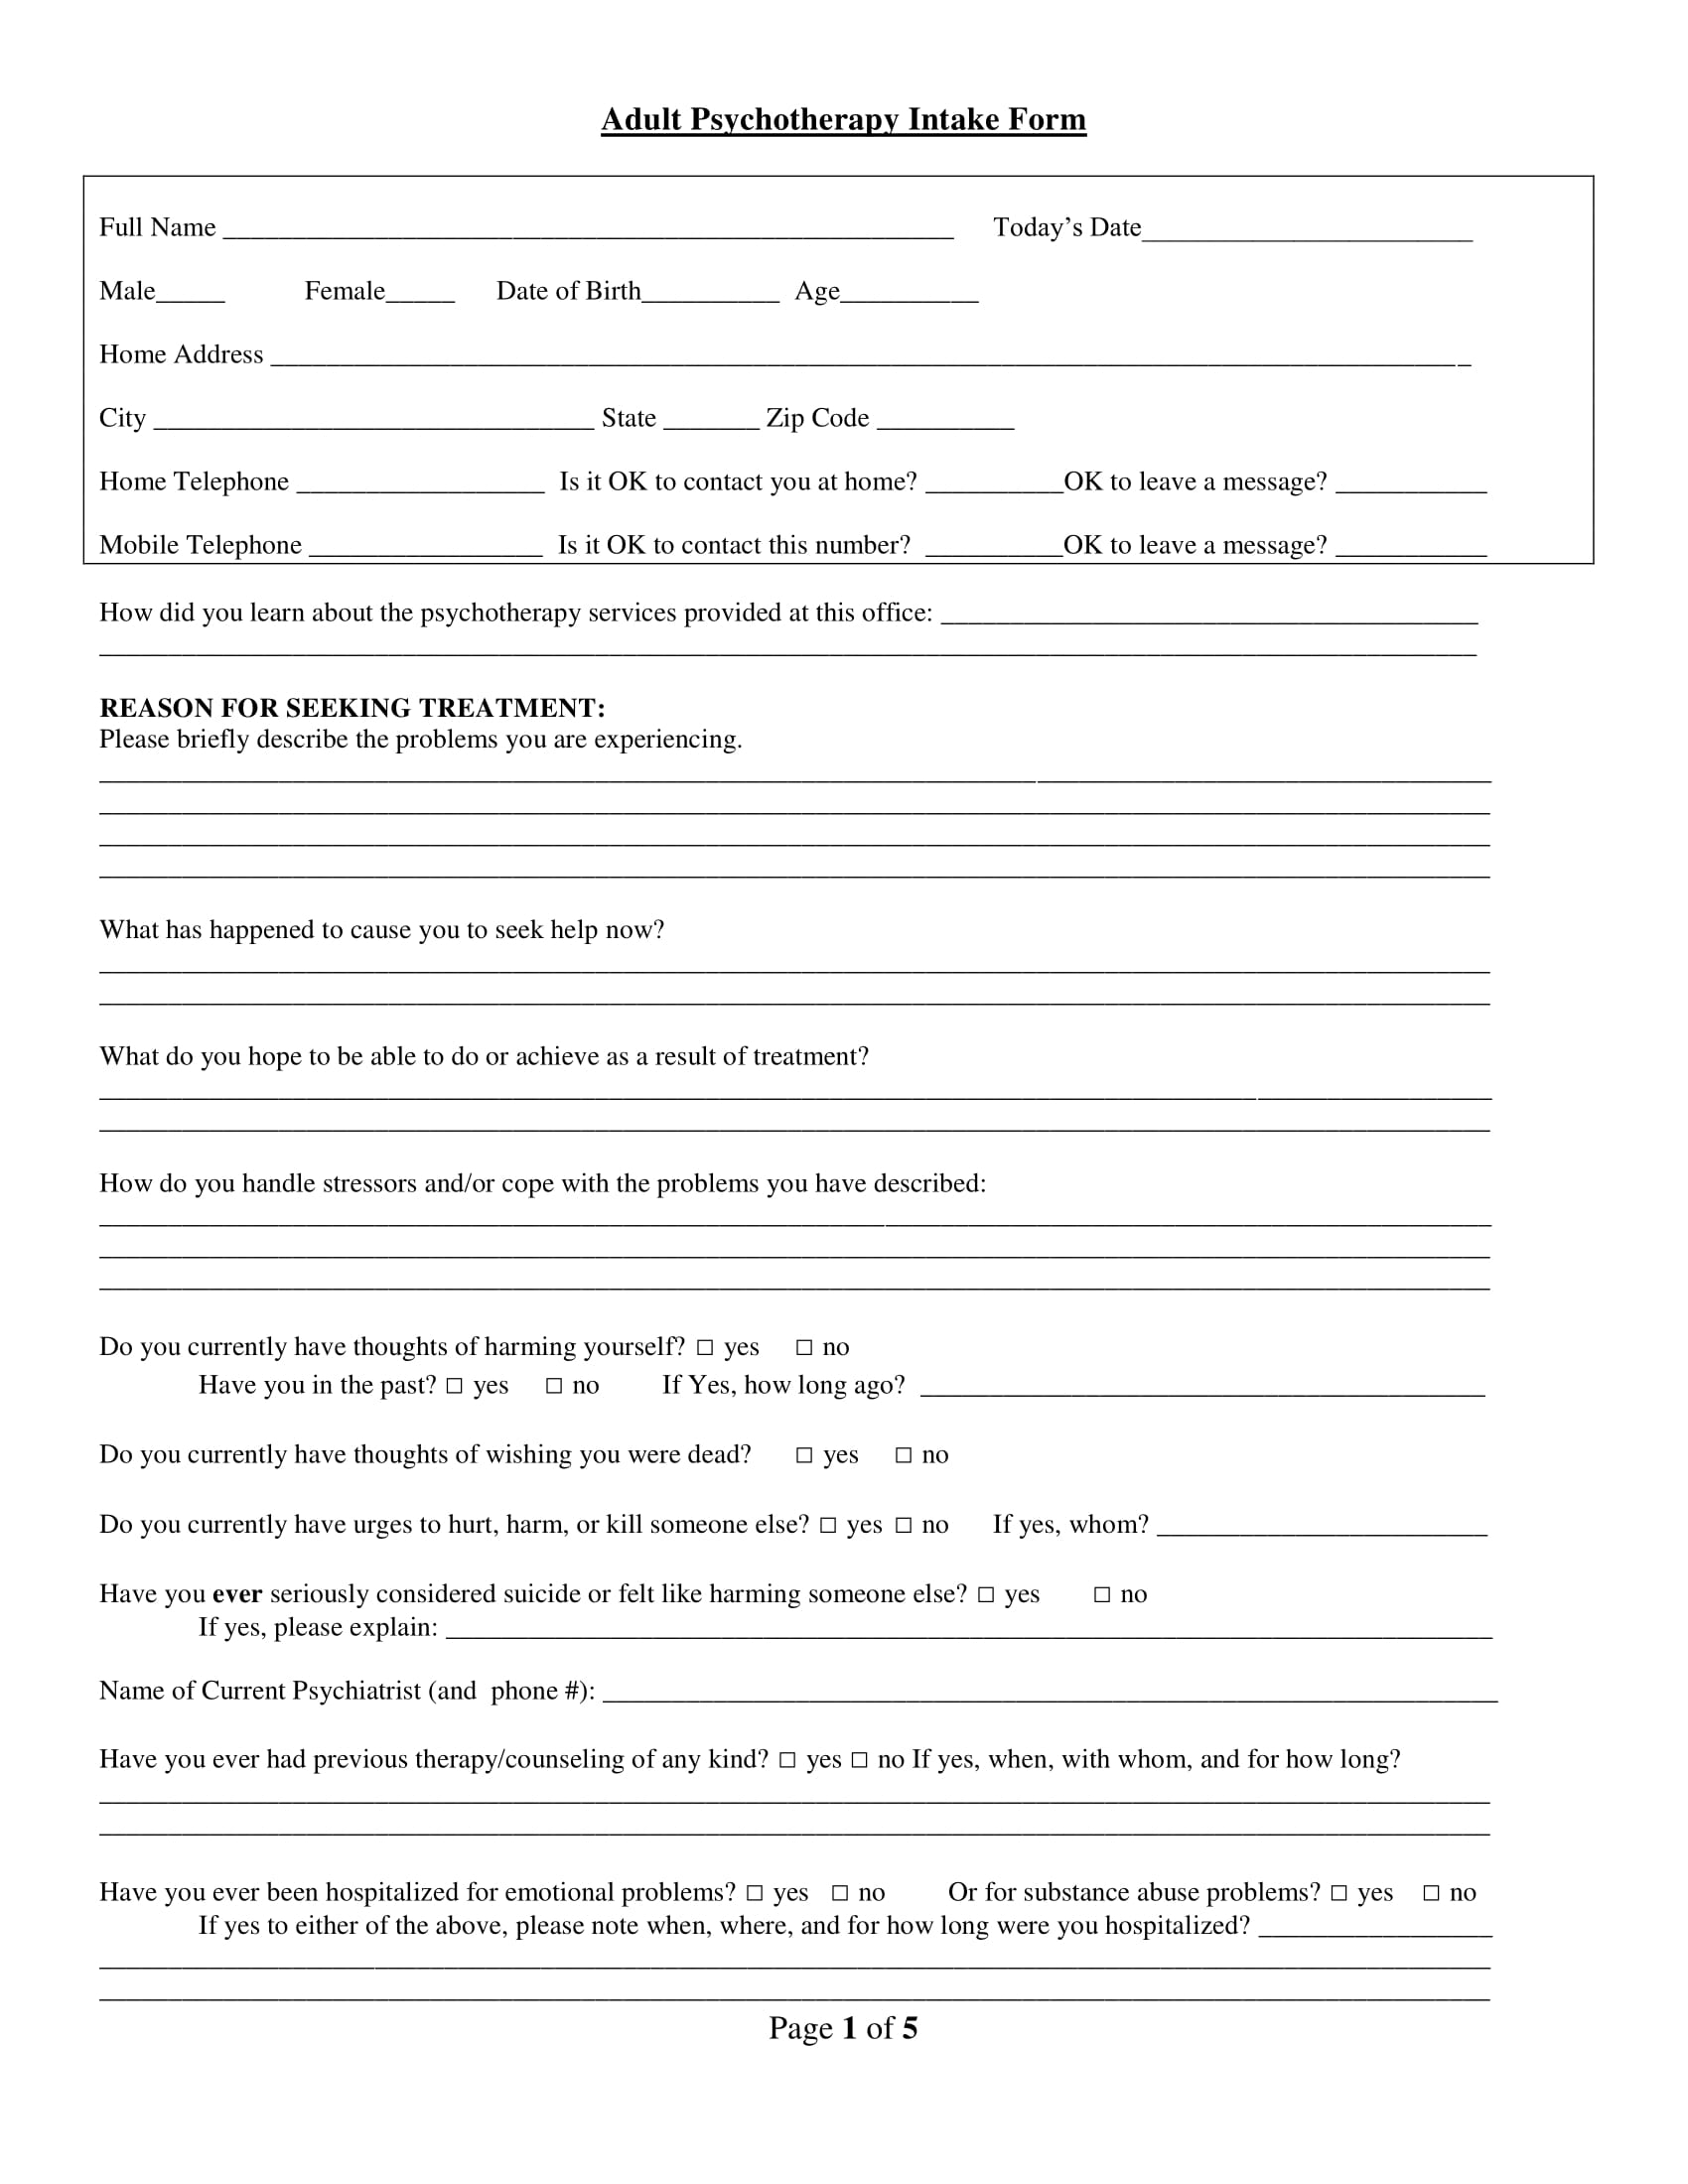 adult psychotherapy intake form 1